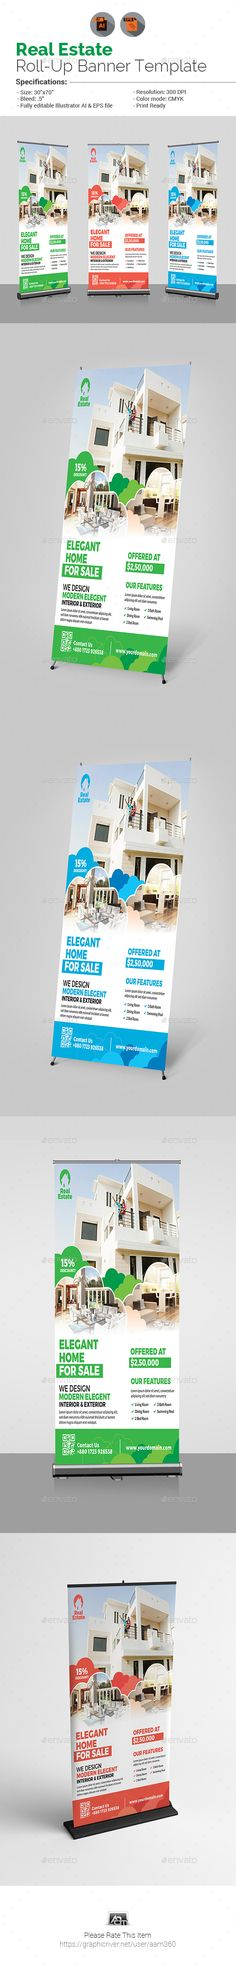 Real Estate Poster Template | Real estate, Ai illustrator and Print ...